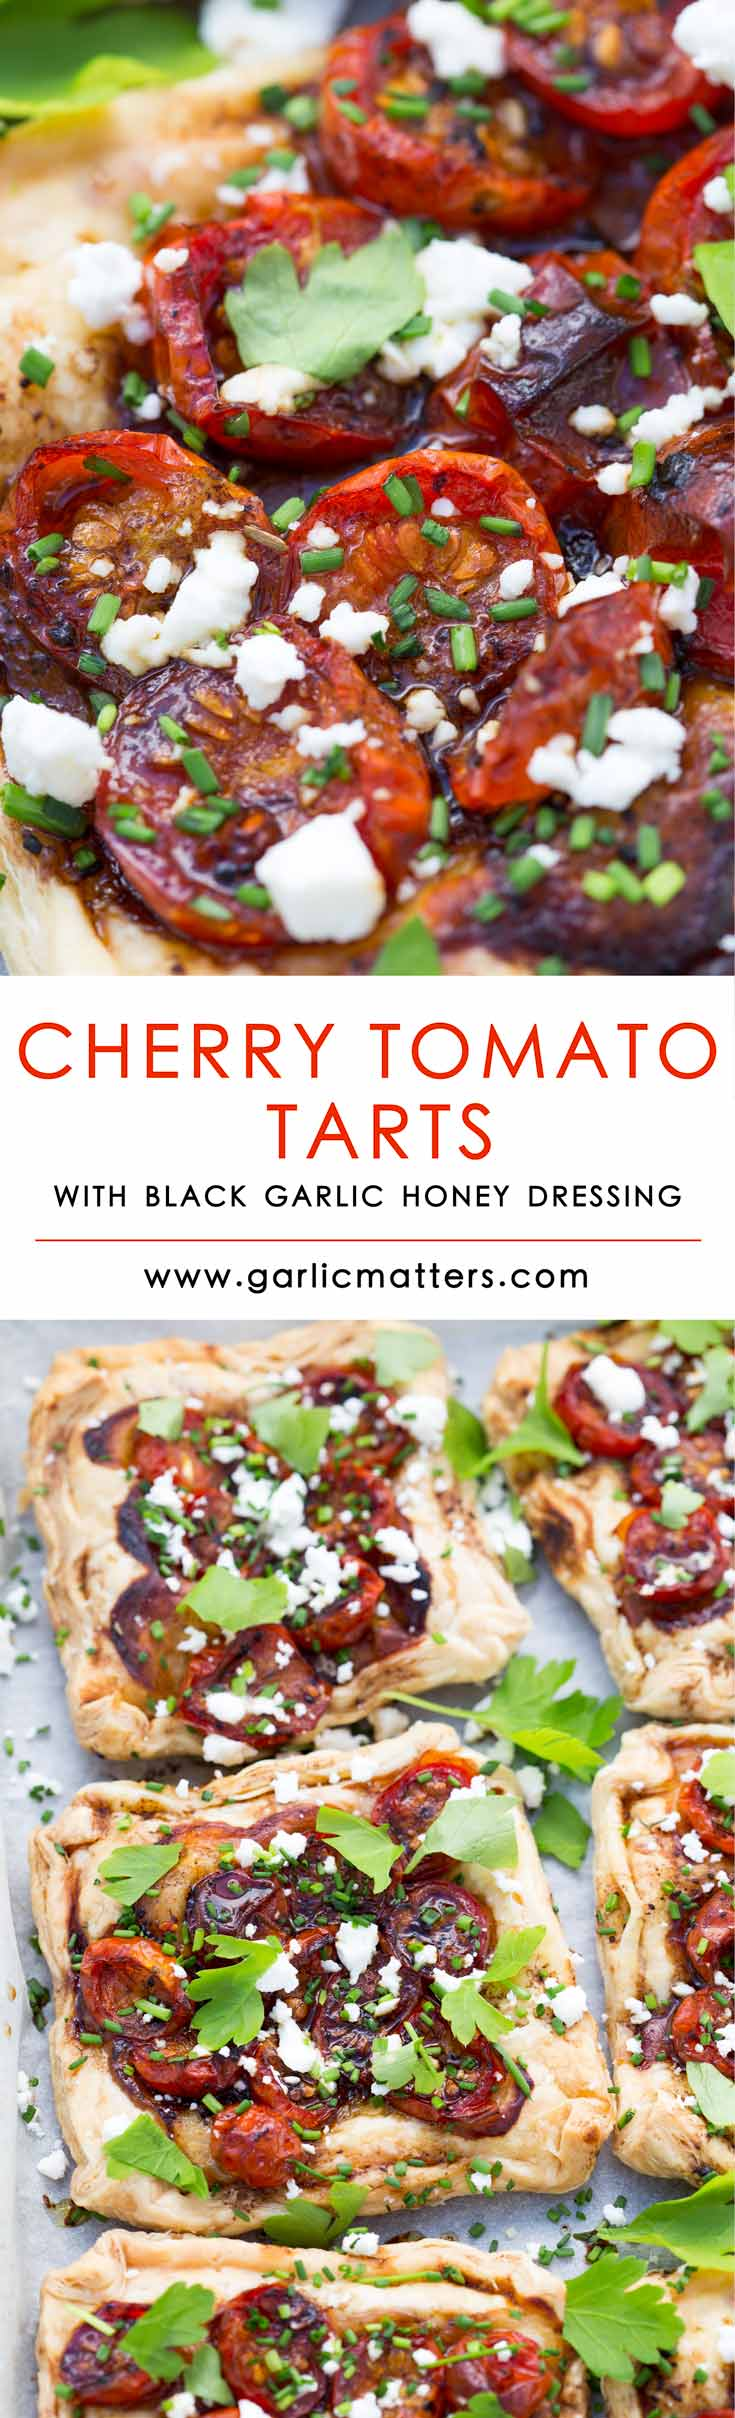 Easy Cherry Tomato Tarts with Black Garlic Honey Dressing simply melt in the mouth. Light, rich and packed with flavour. Perfect for light, vegetarian lunch or a snack. They simply melt in the mouth!